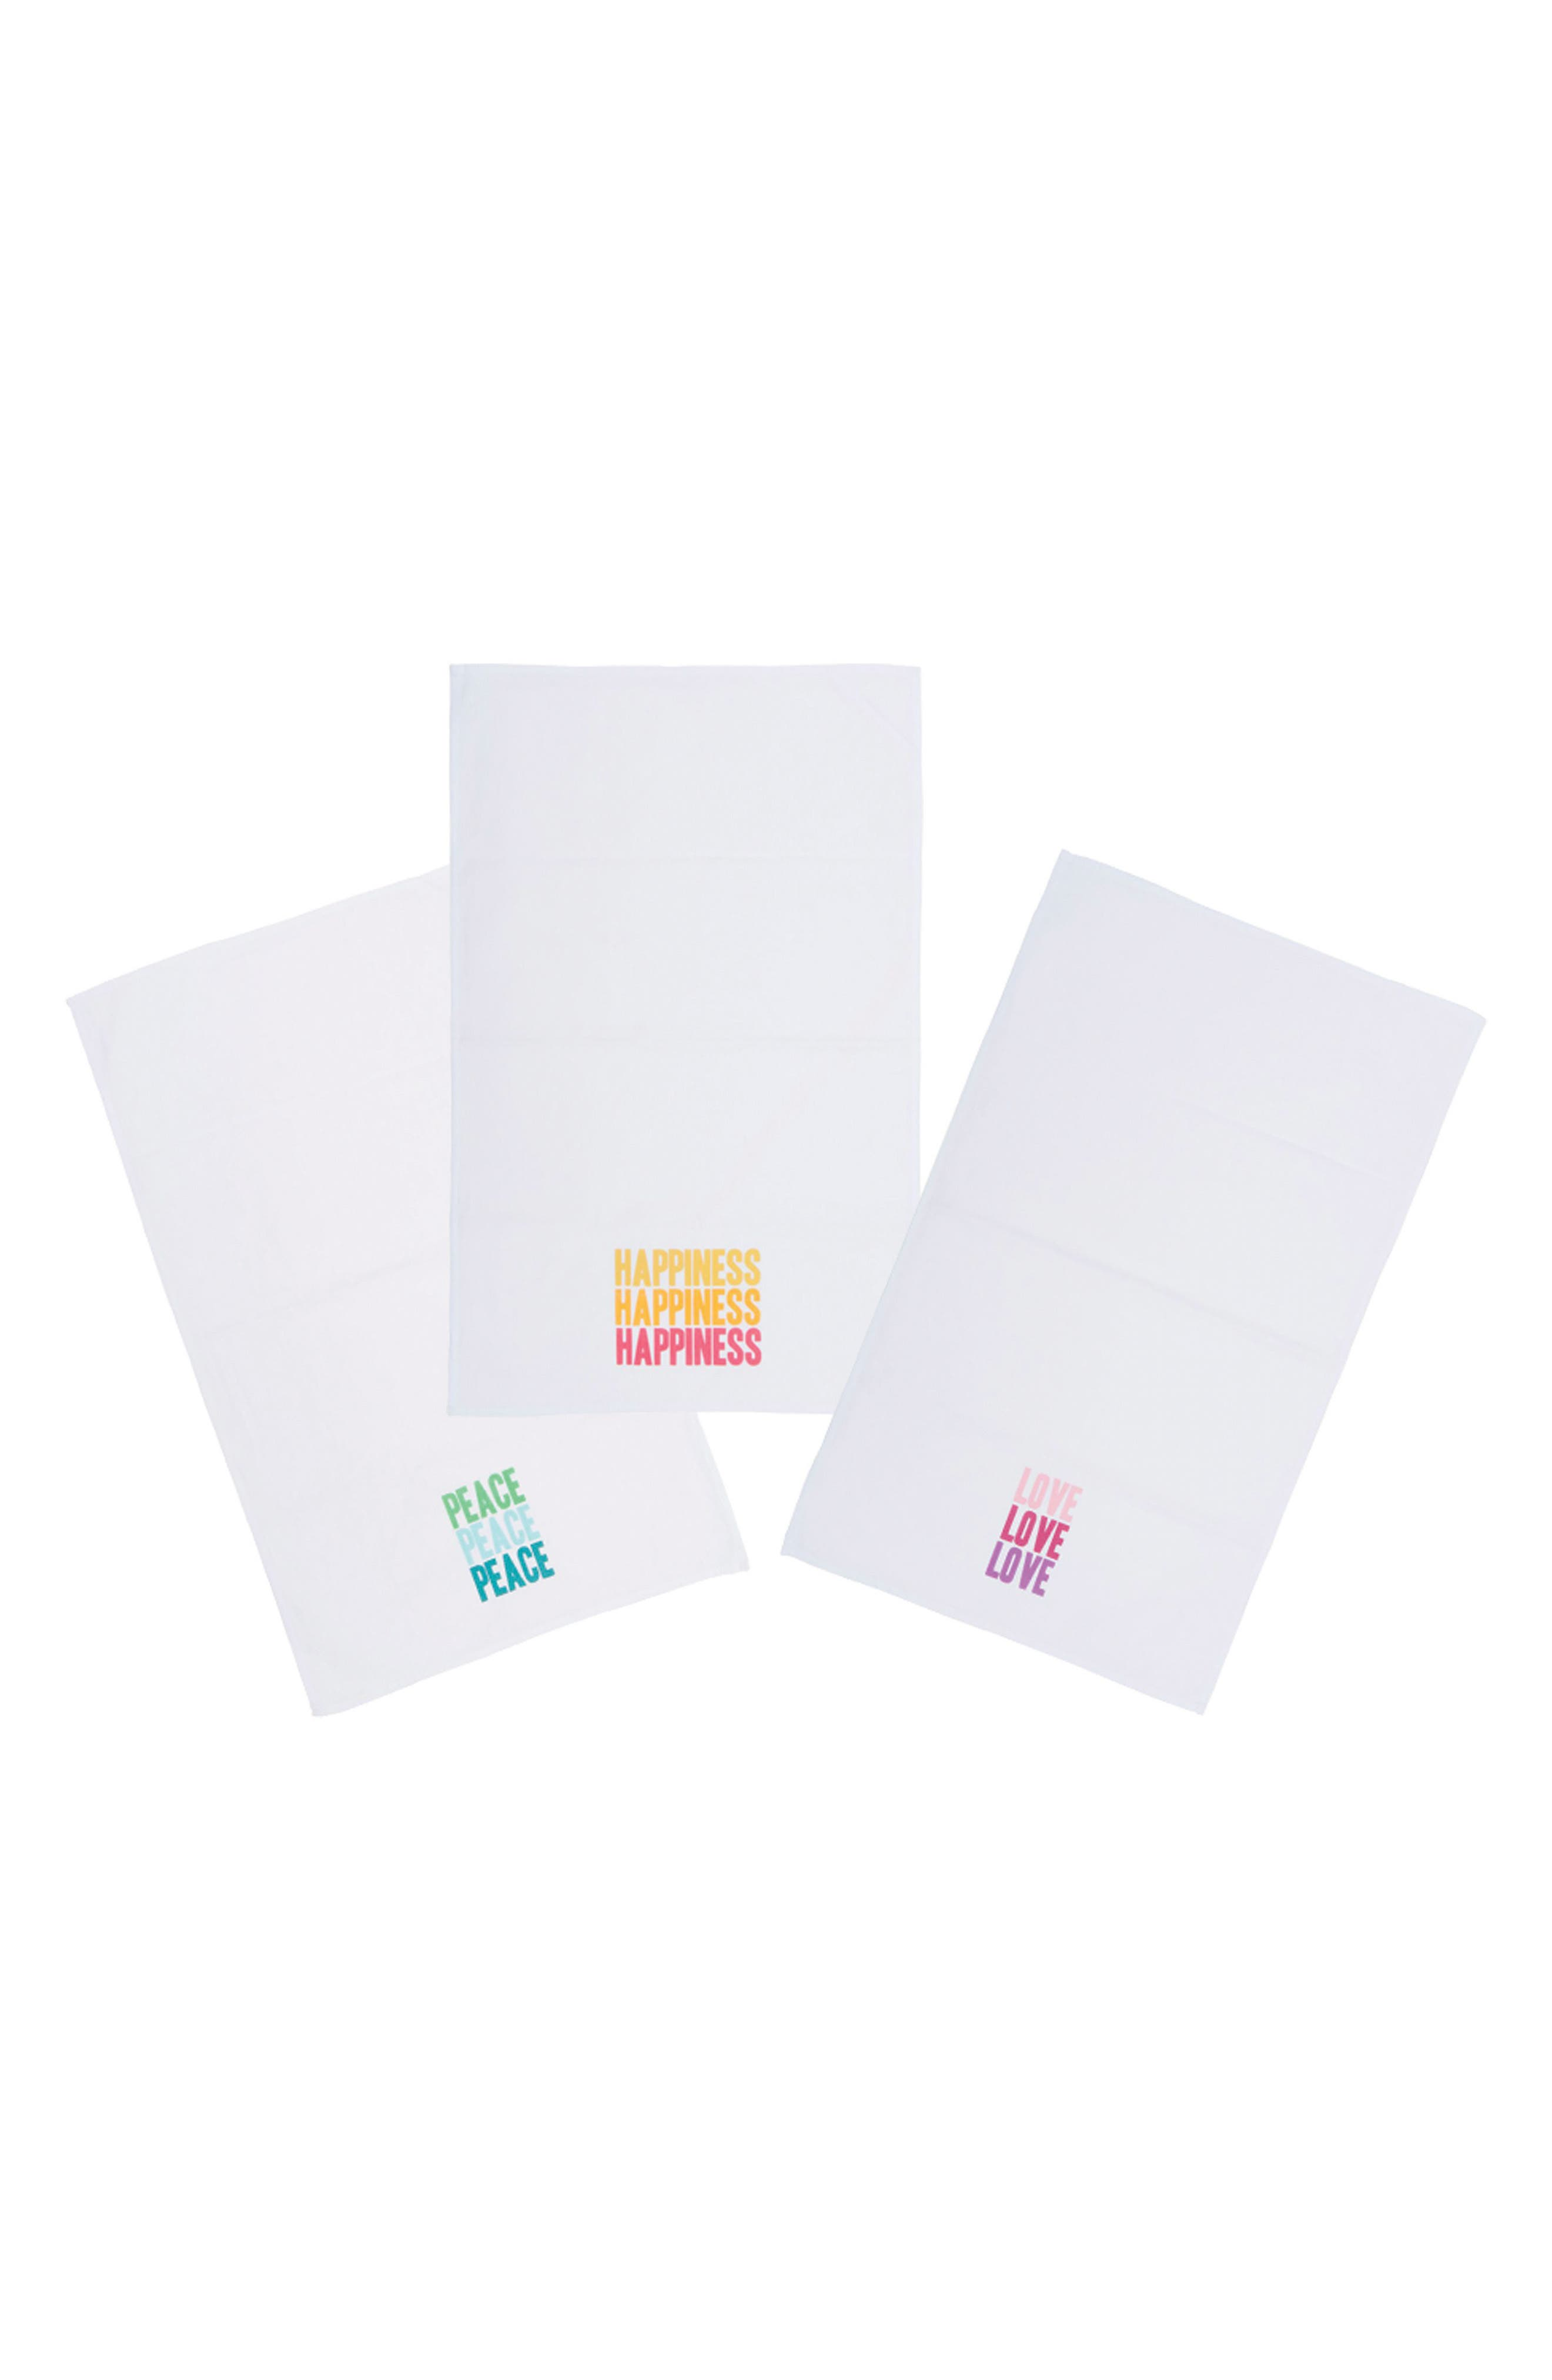 Peace Love Happiness Set of 3 Tea Towels,                         Main,                         color, 100